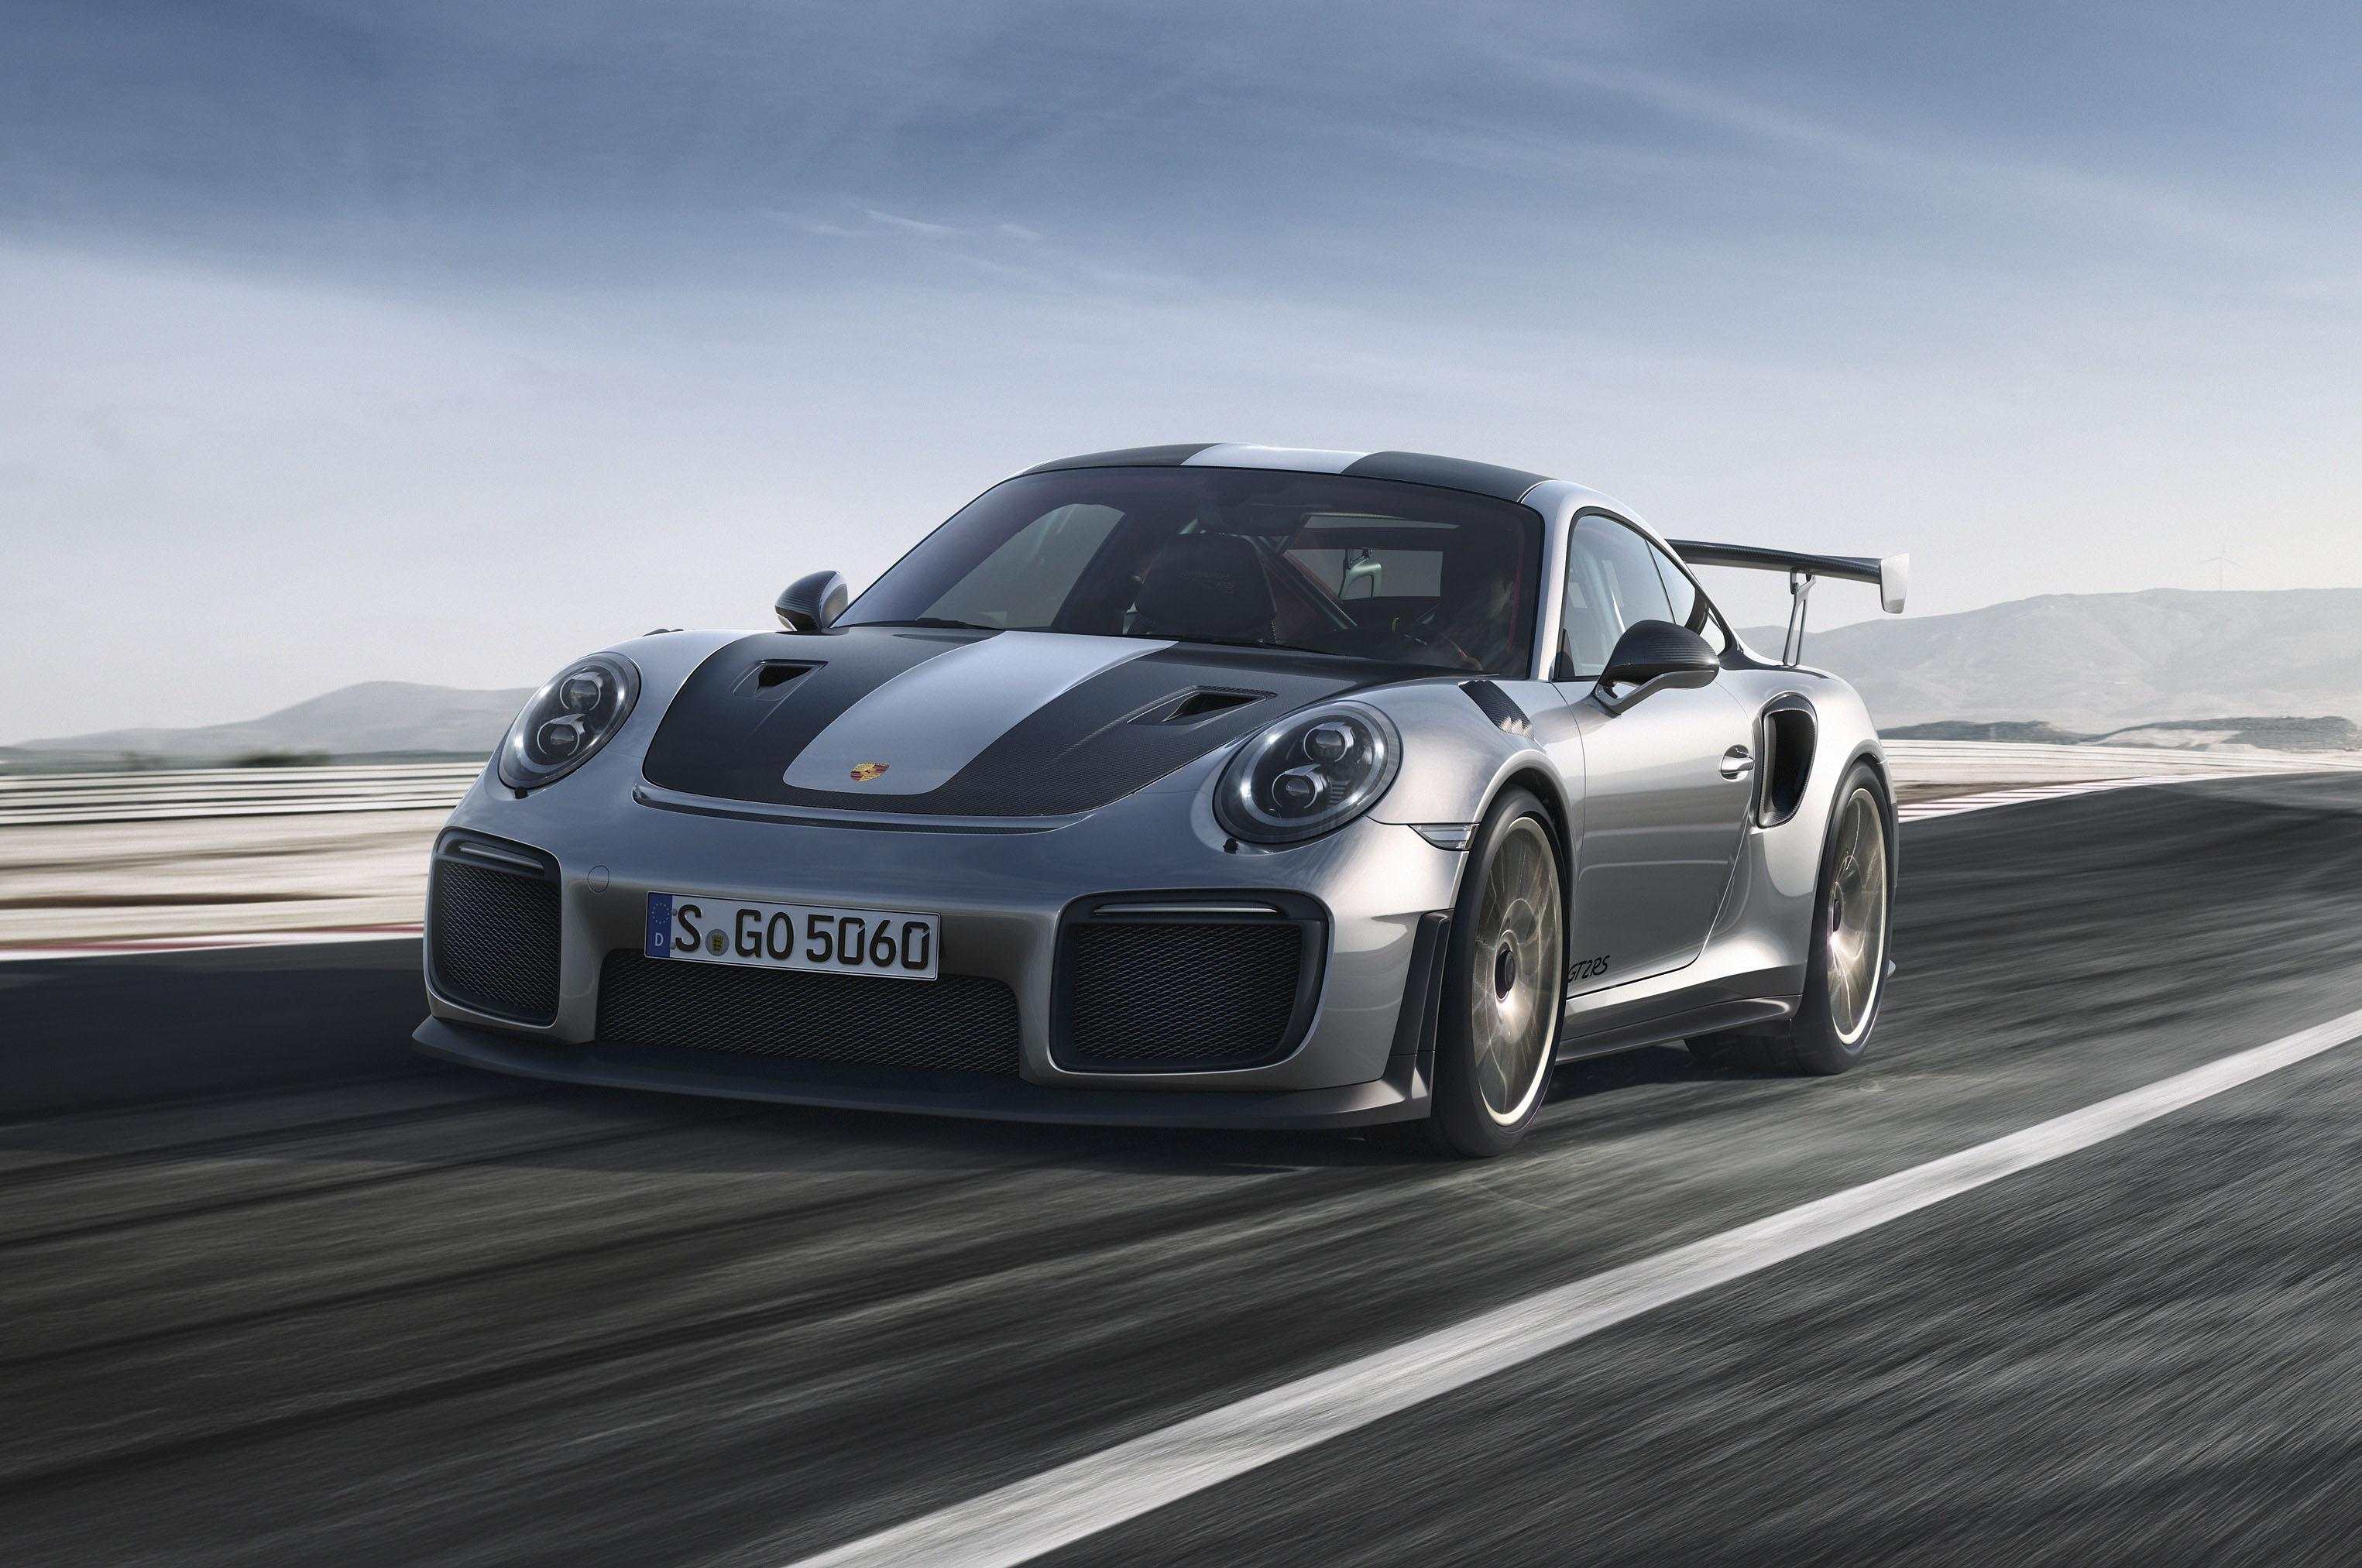 Porsche 911 Gt2 Rs 991 Laptimes Specs Performance Data 918 Spyder Engine Diagram Image Of